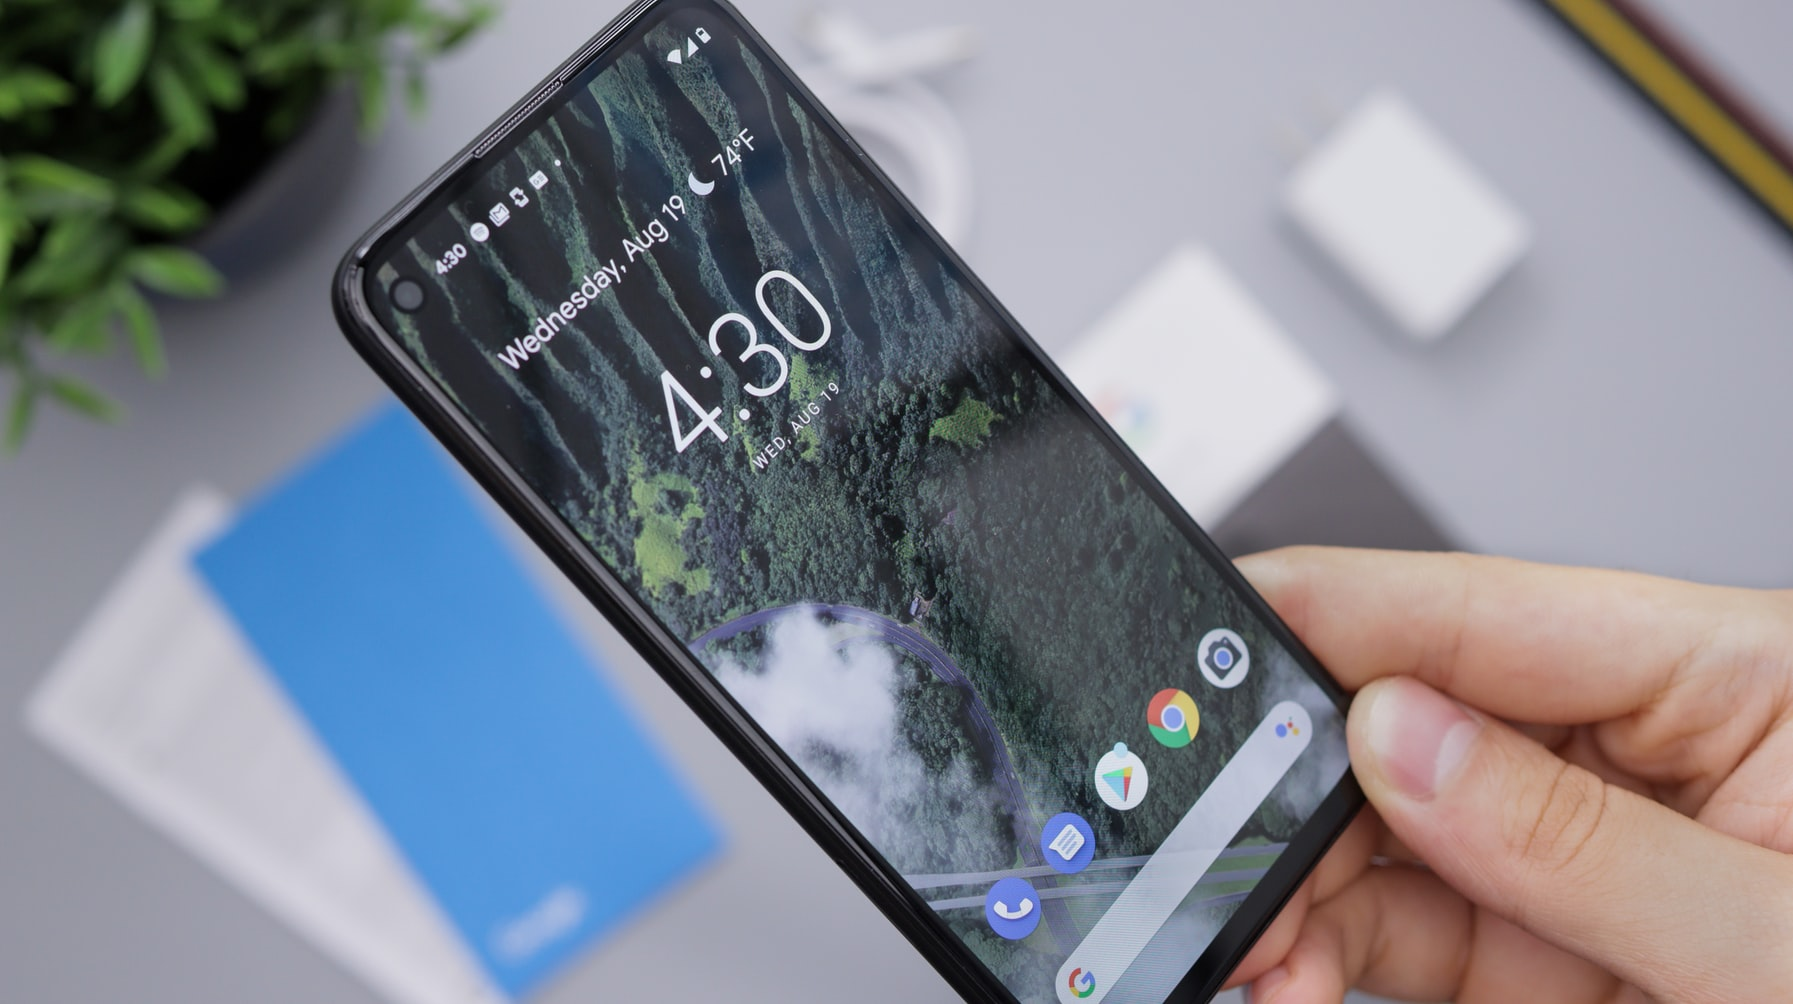 Someone holding a Google Pixel phone